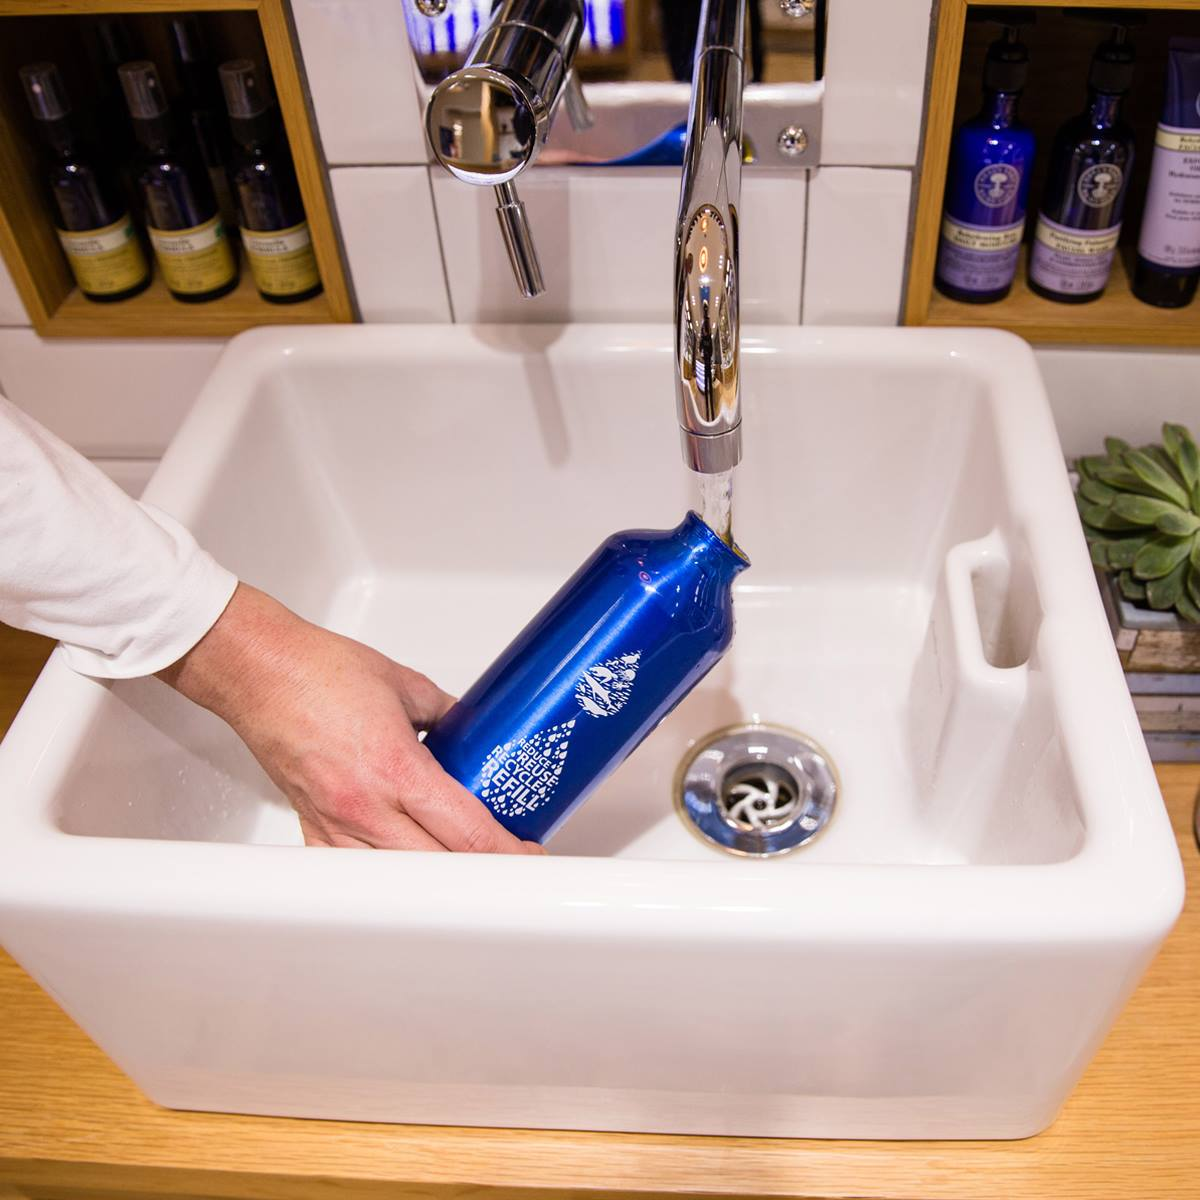 Neal's Yard Remedies water refill station